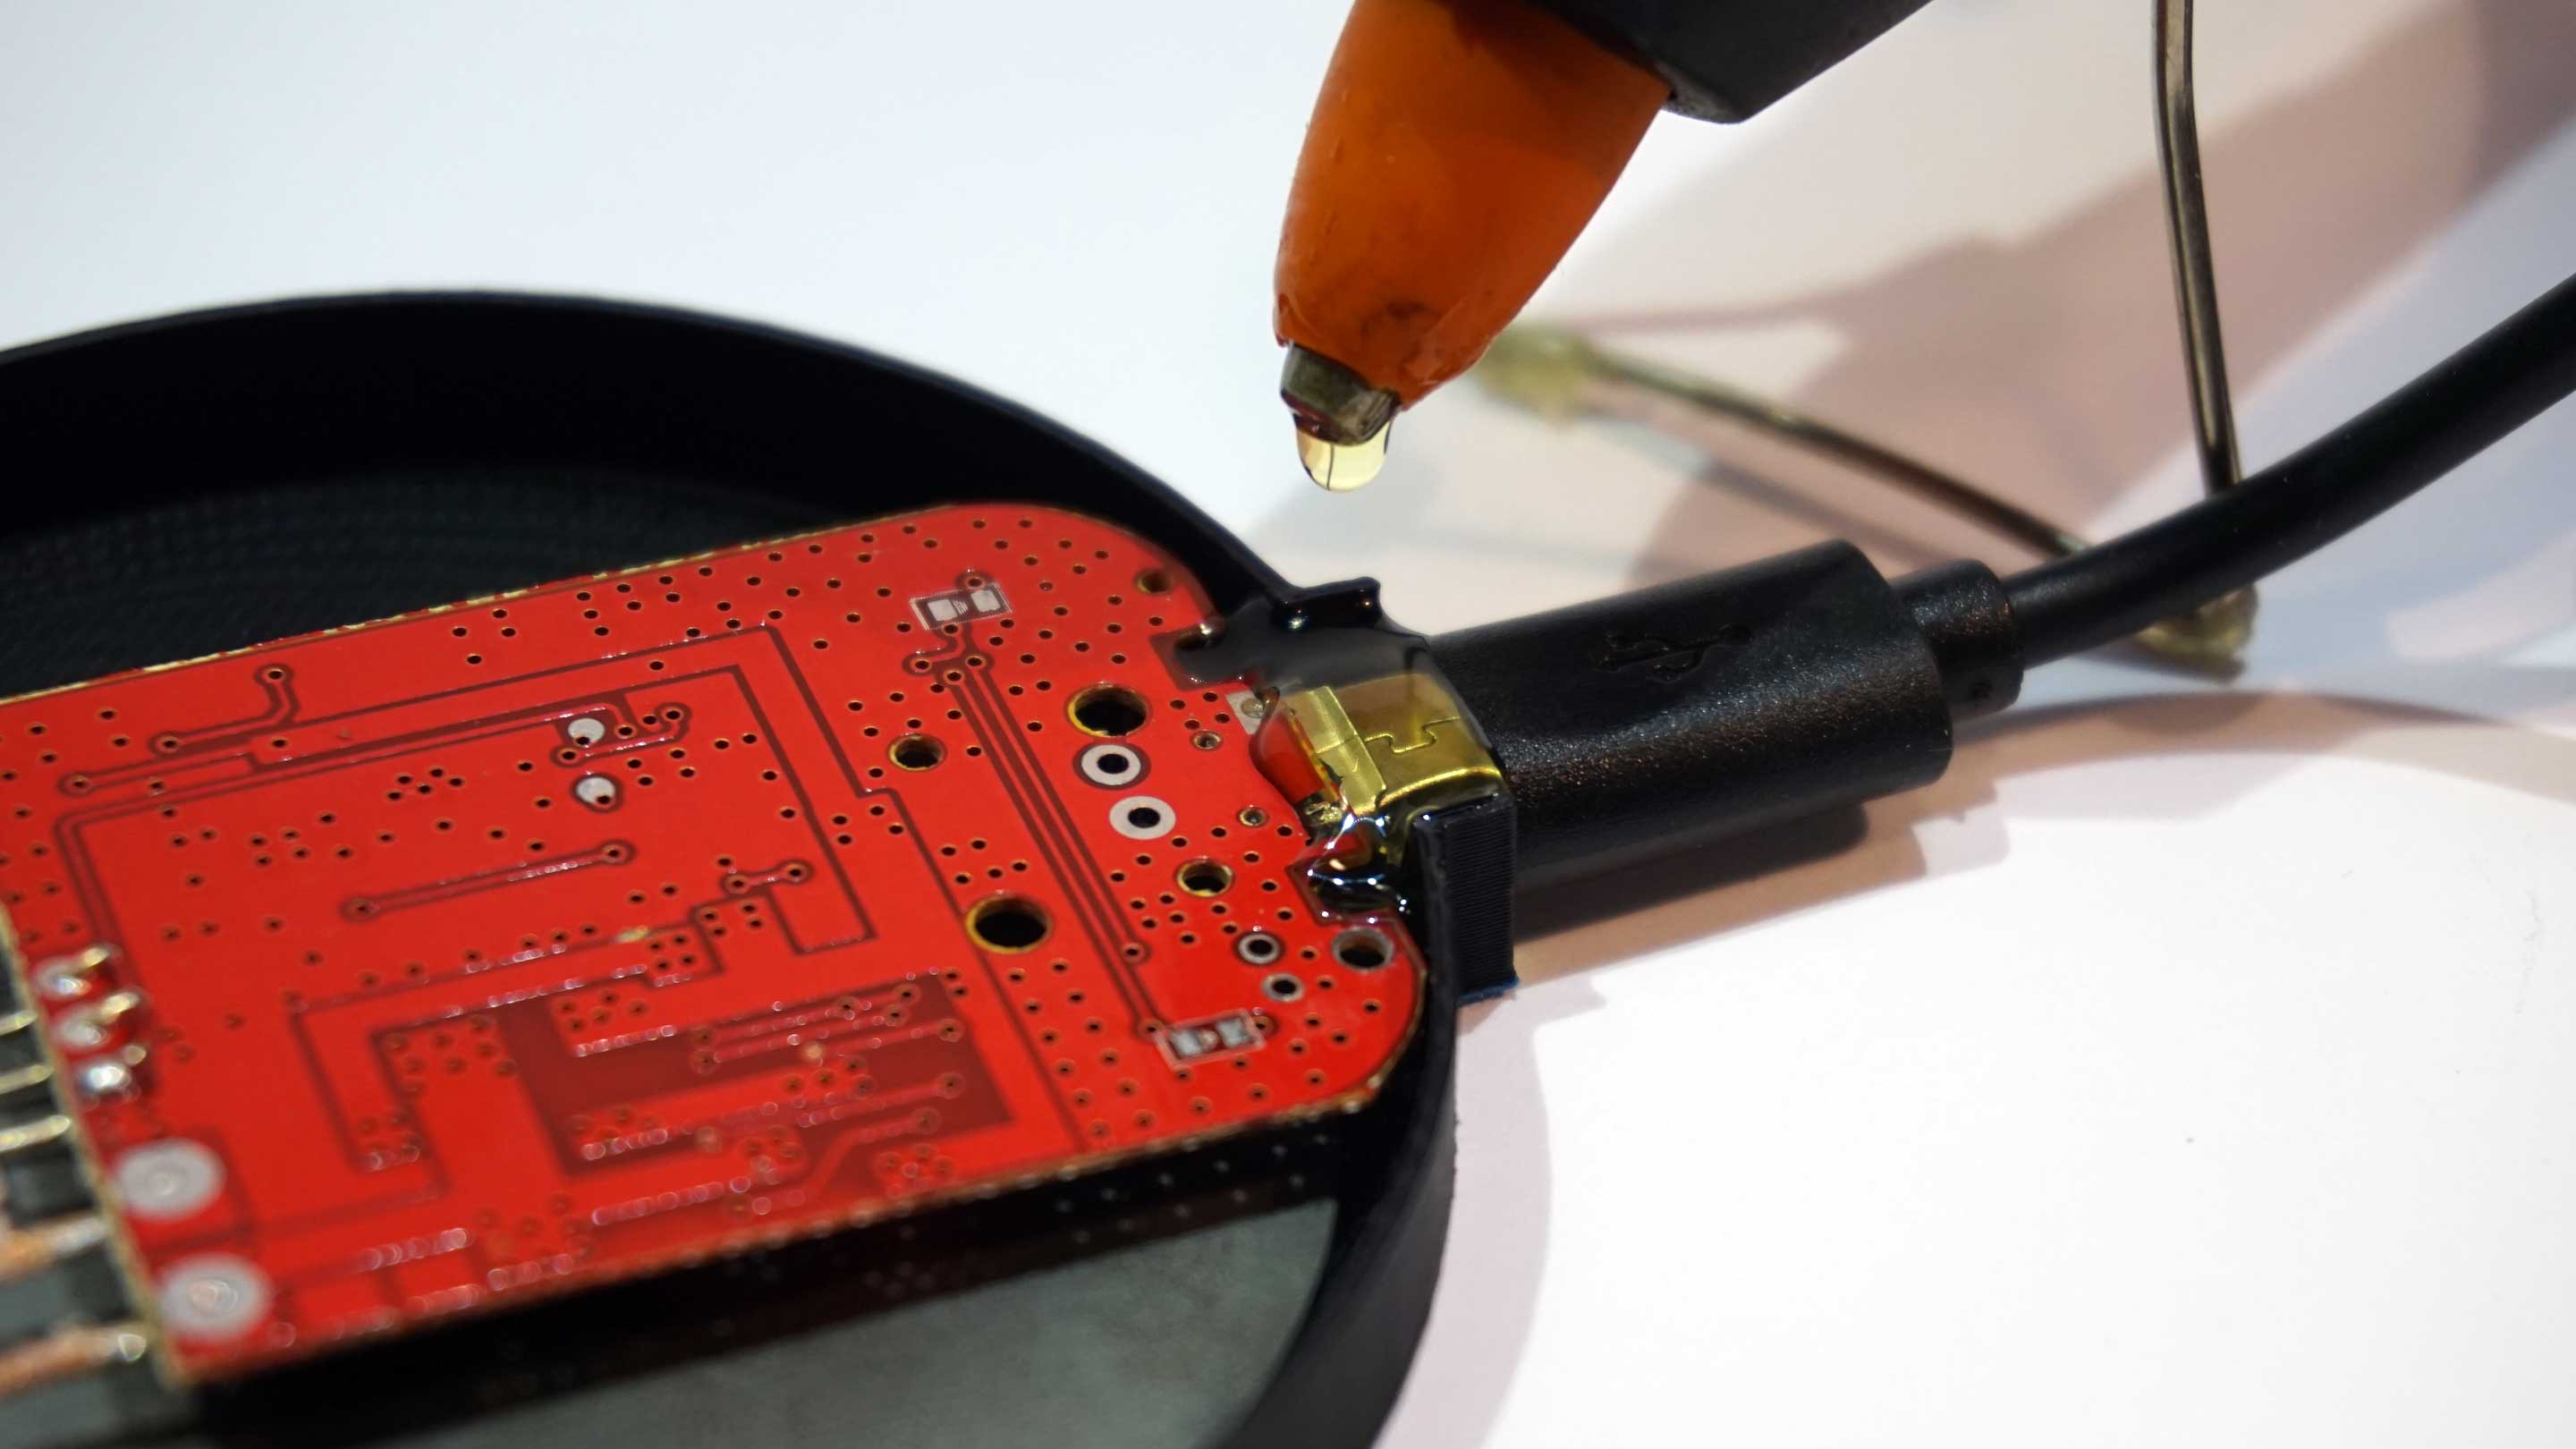 Don't be afraid of using too much glue. It is non-conductive, will not short anything out and will not damage the PCB .